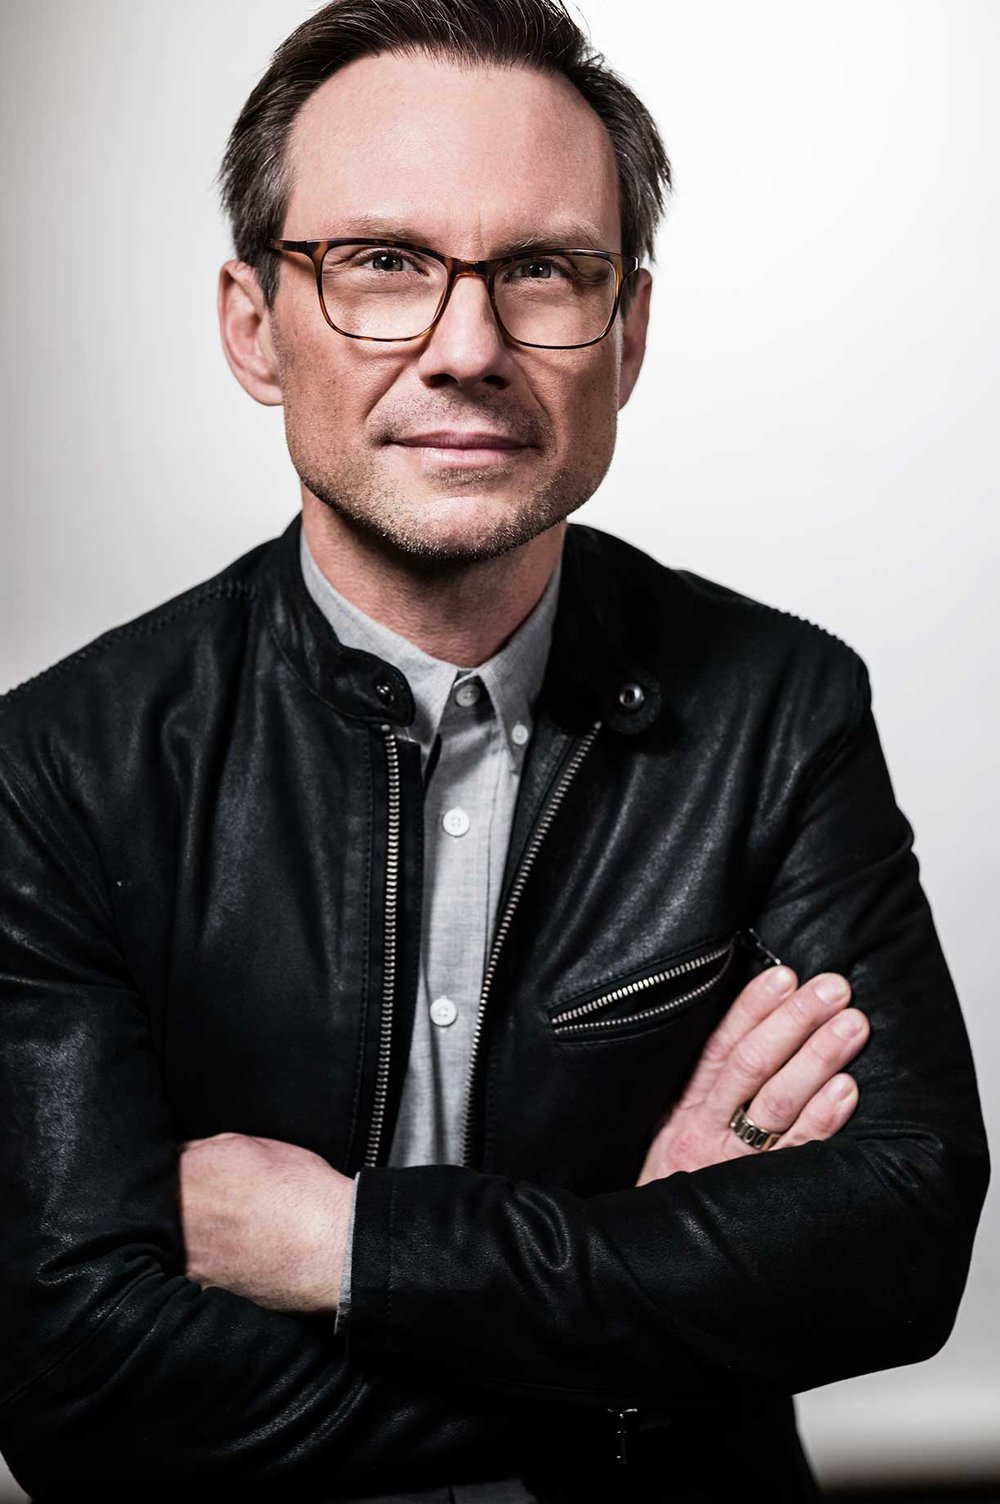 Christian-Slater---Mr-Robot-00072-1.jpg